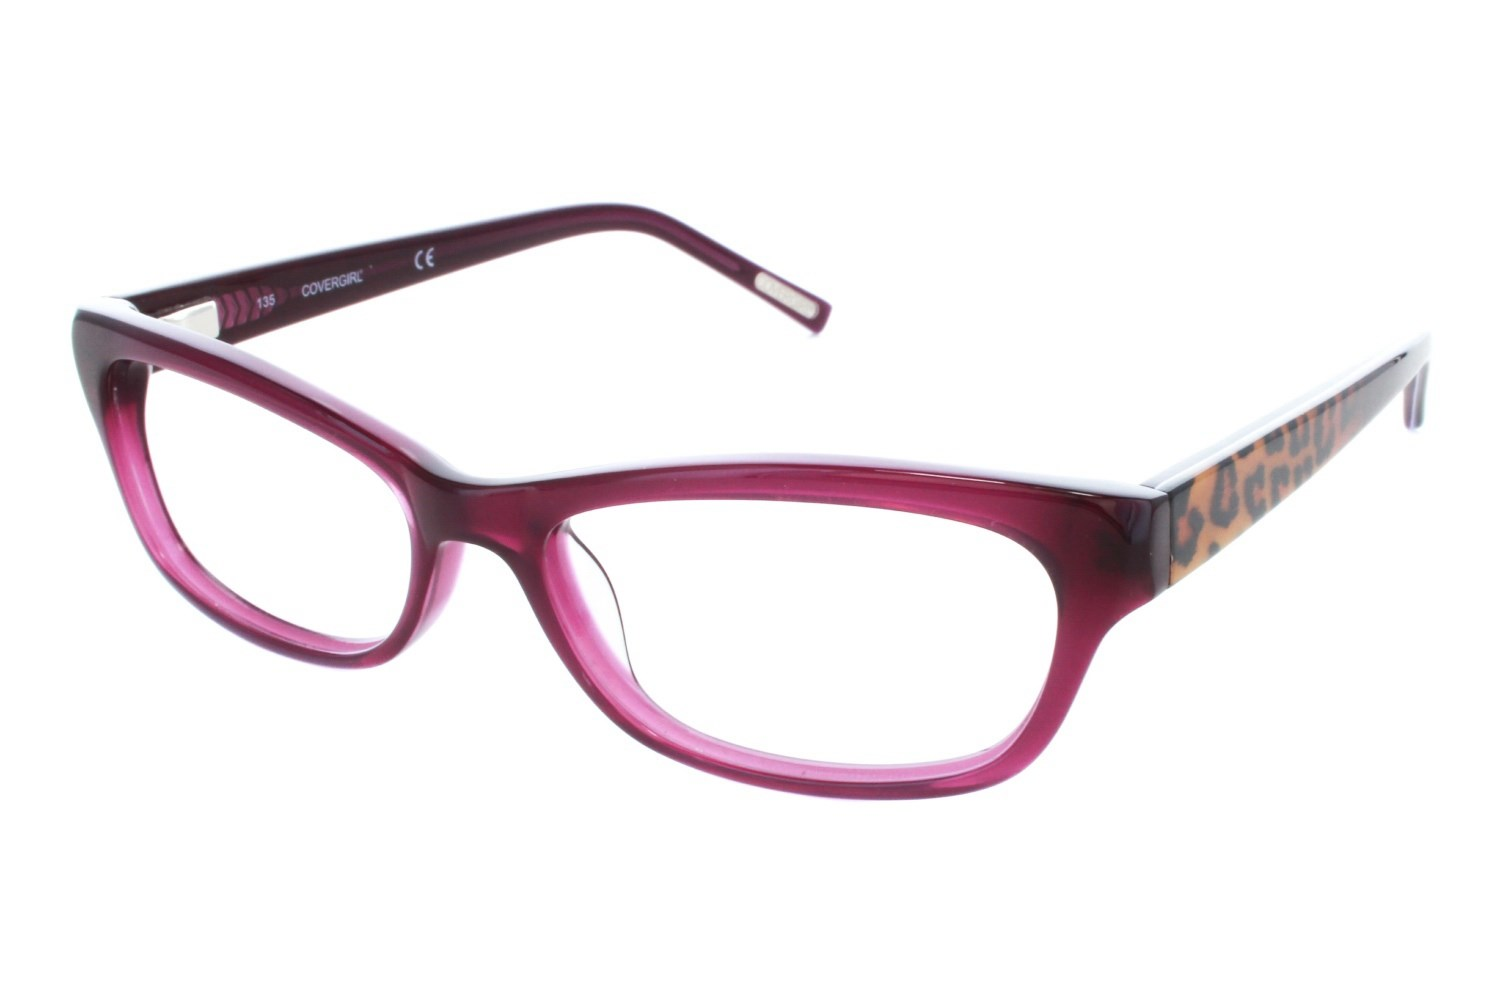 Covergirl CG0512 Prescription Eyeglasses - HughReadingGlasses